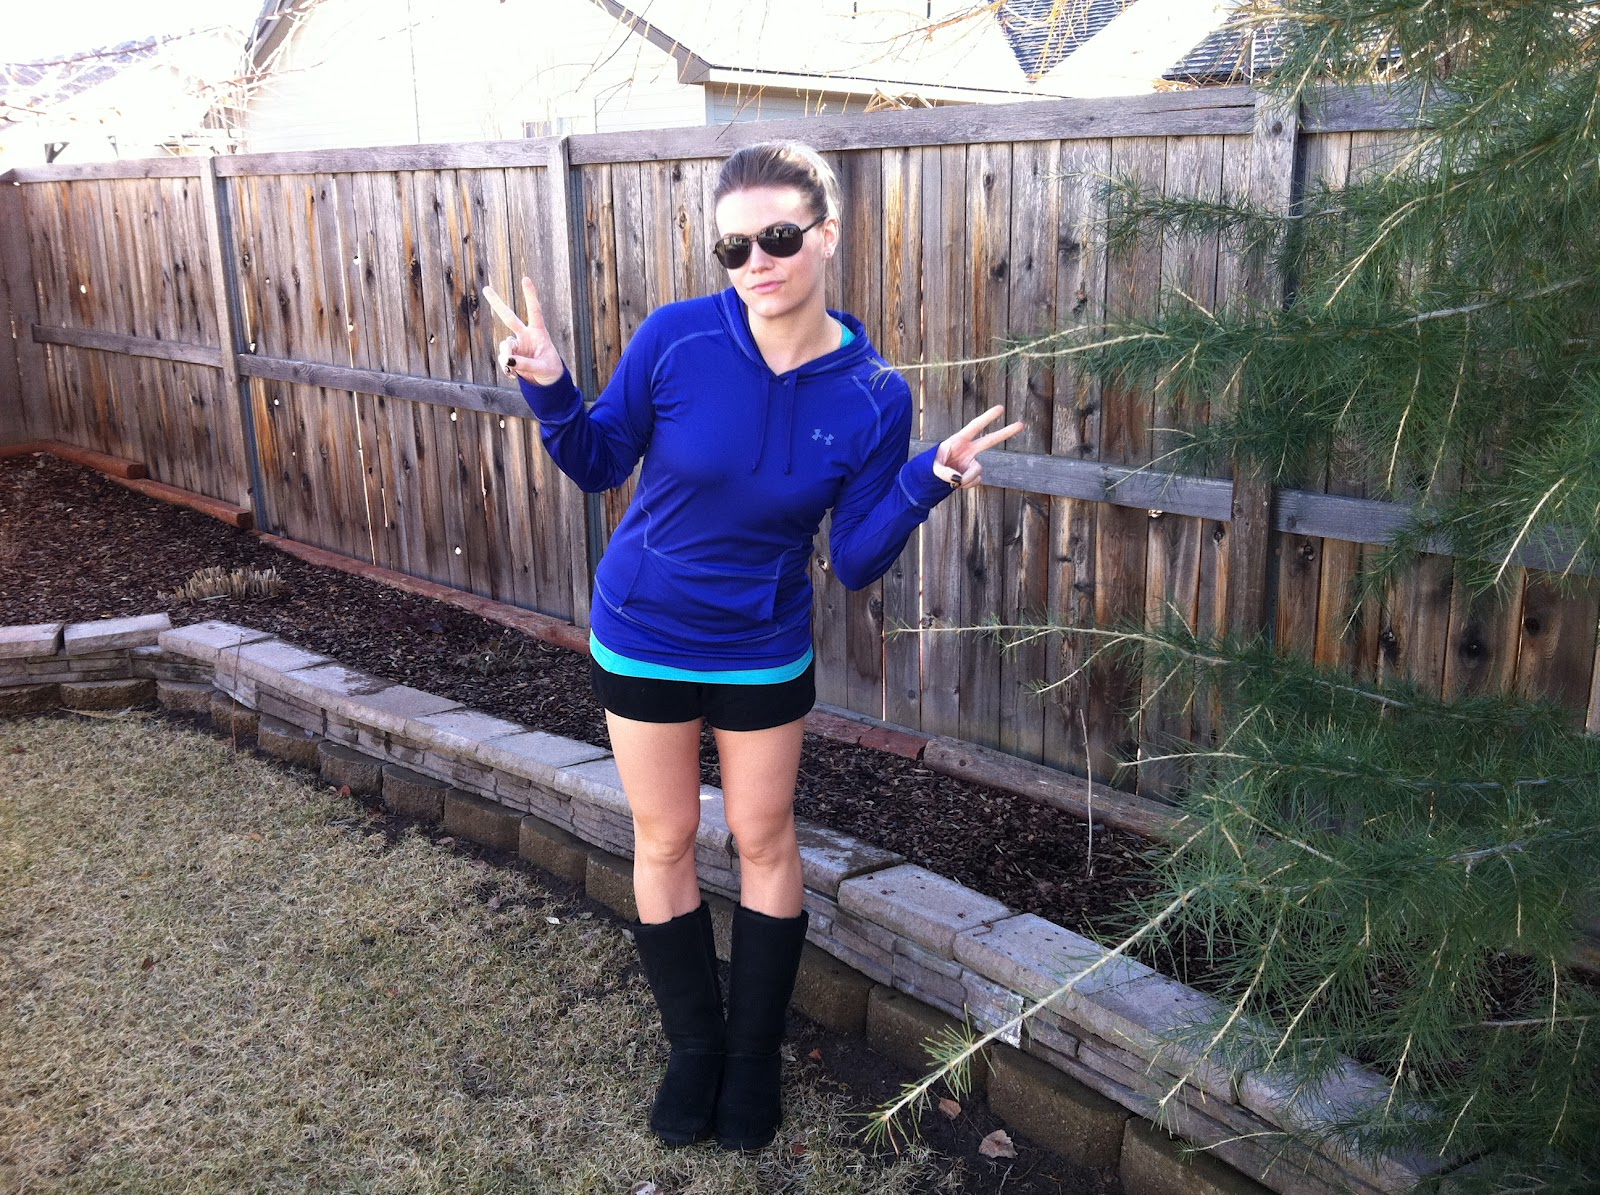 16f1e19a4f Wearing Skirts And Boots In Winter - Data Dynamic AG